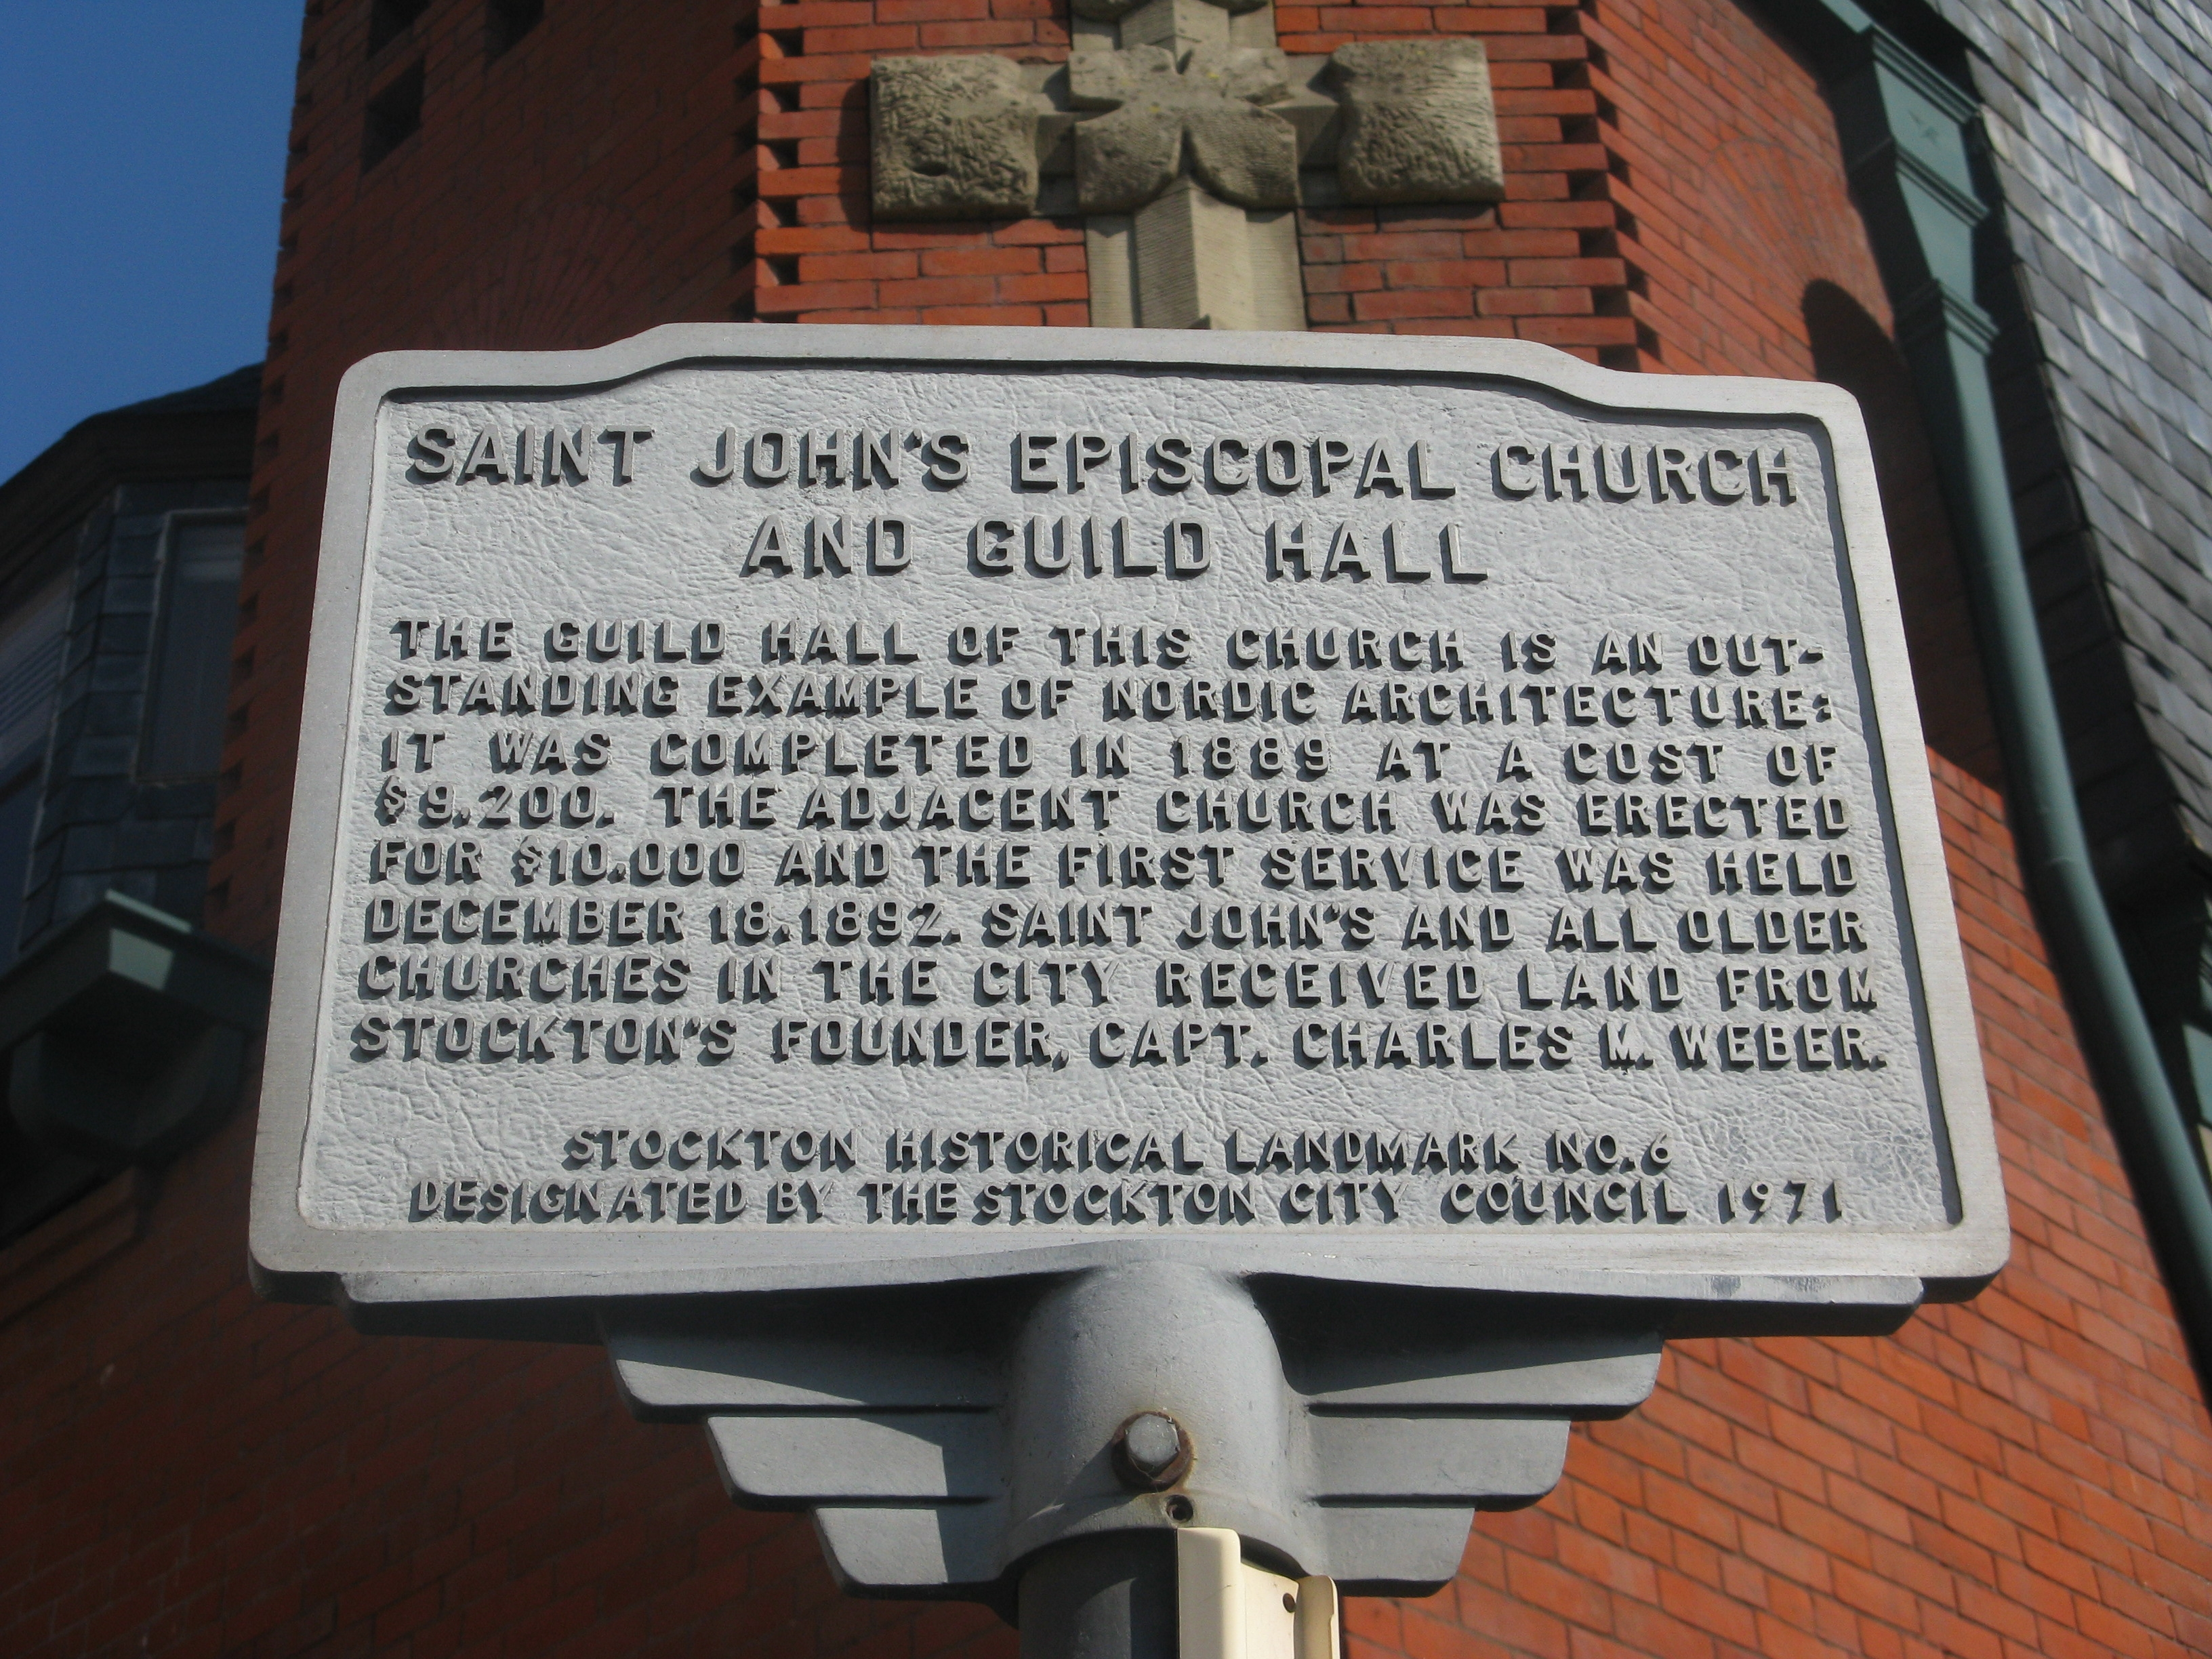 Saint John's Episcopal Church and Guild Hall Marker